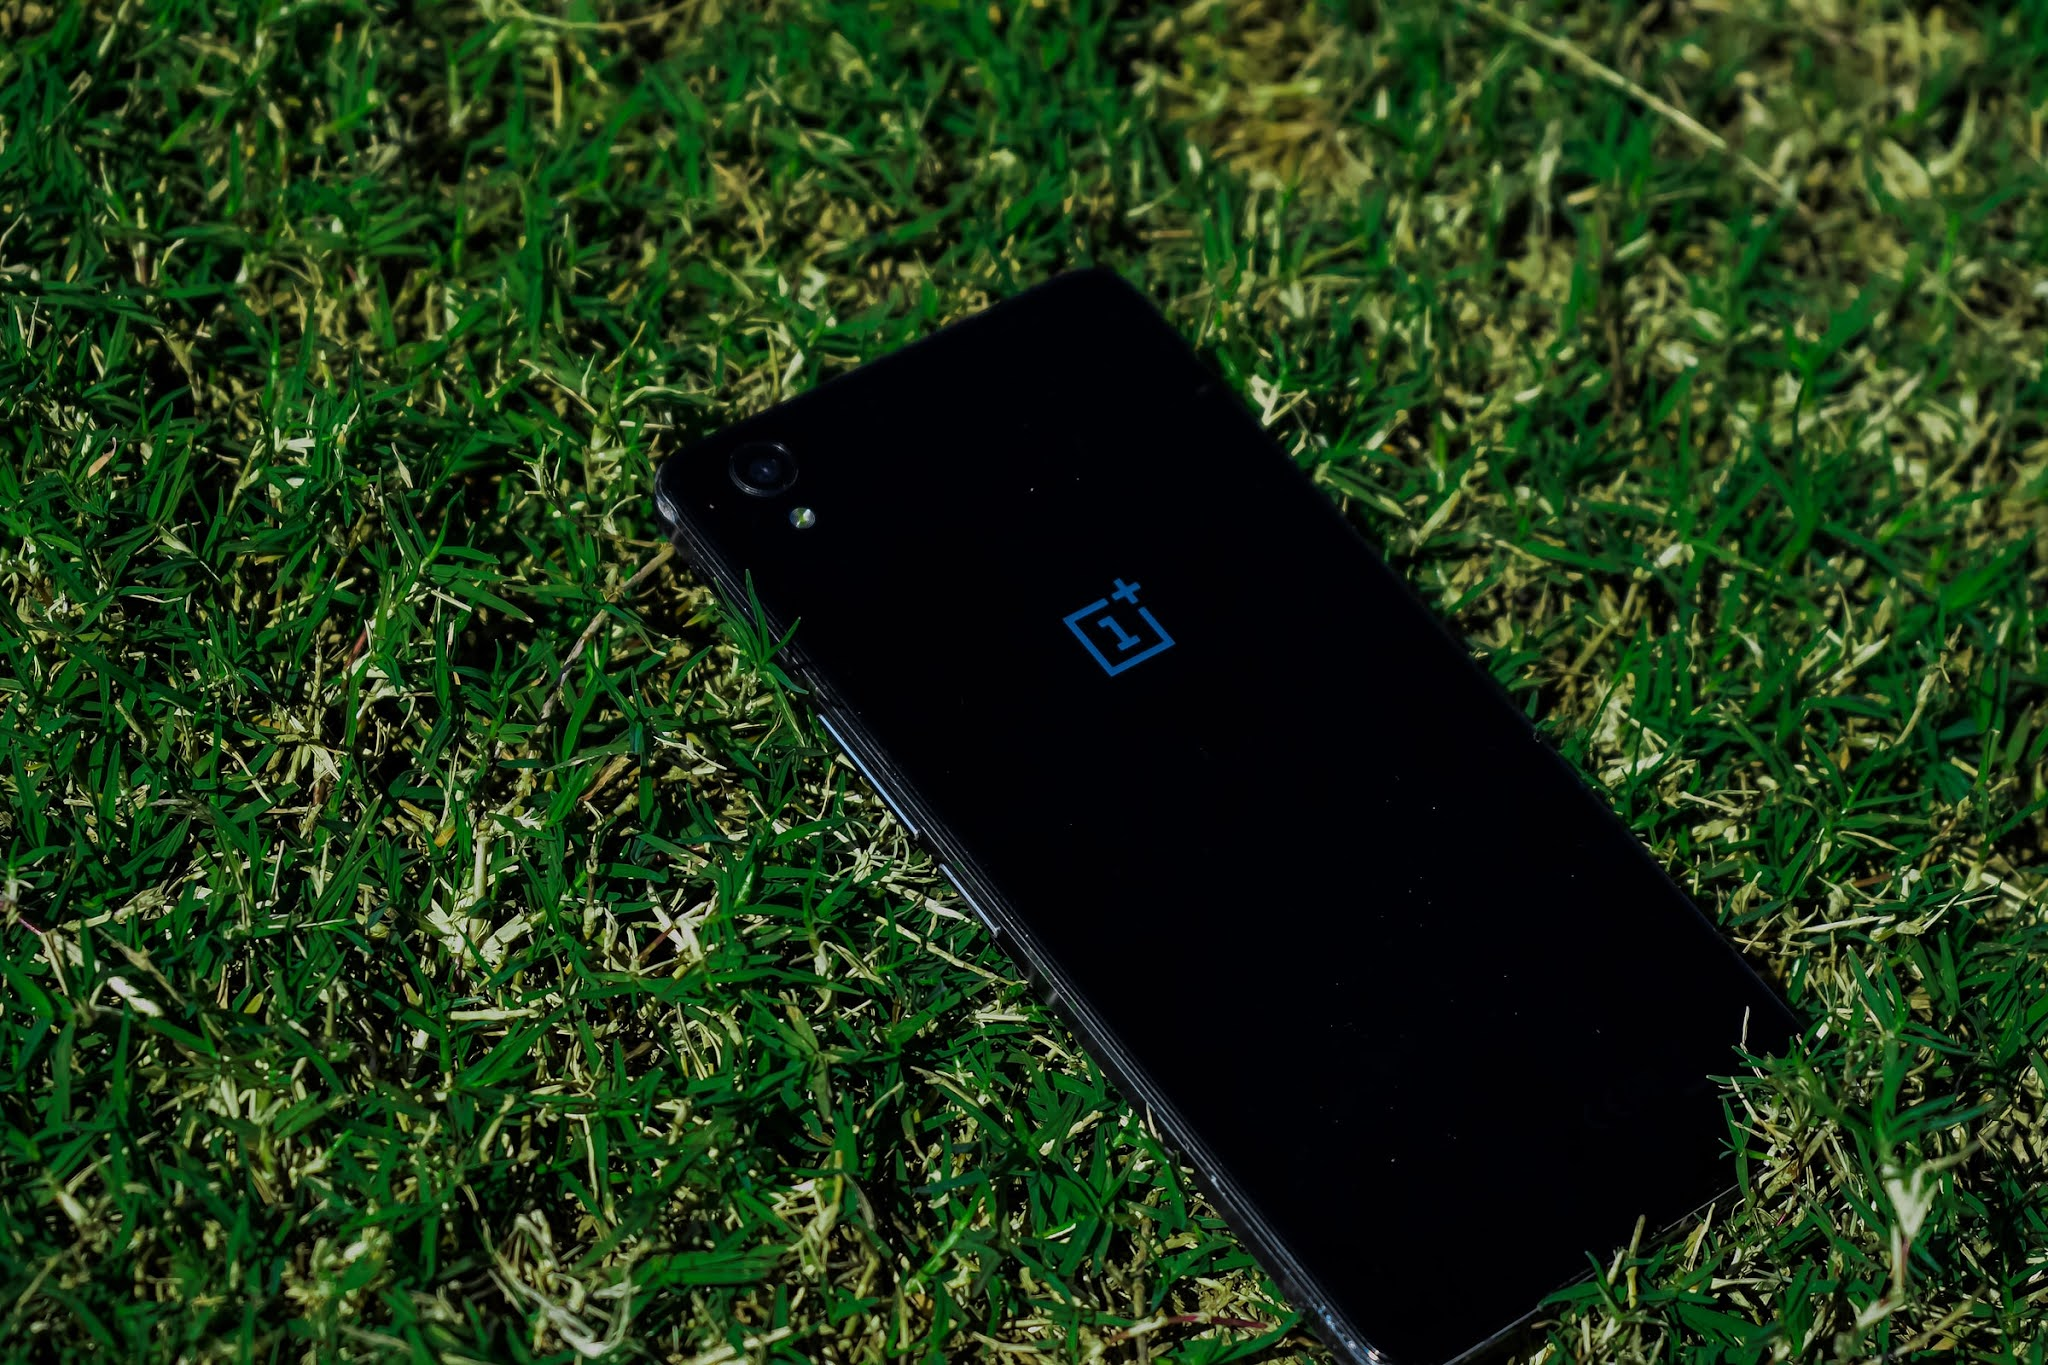 Android Oneplus Phone